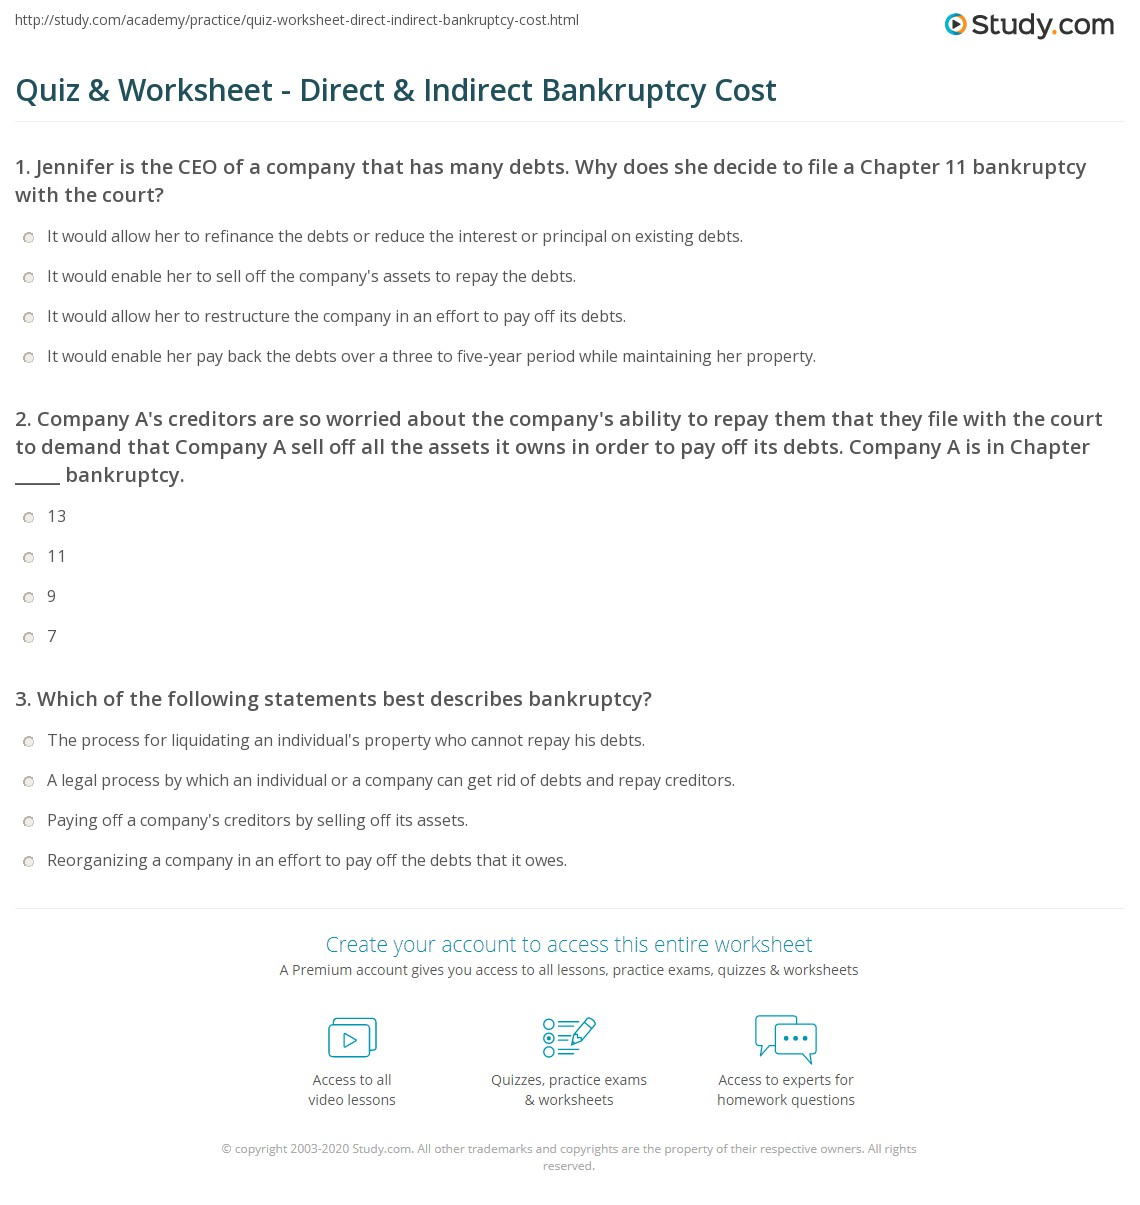 Print Direct & Indirect Bankruptcy Costs Worksheet